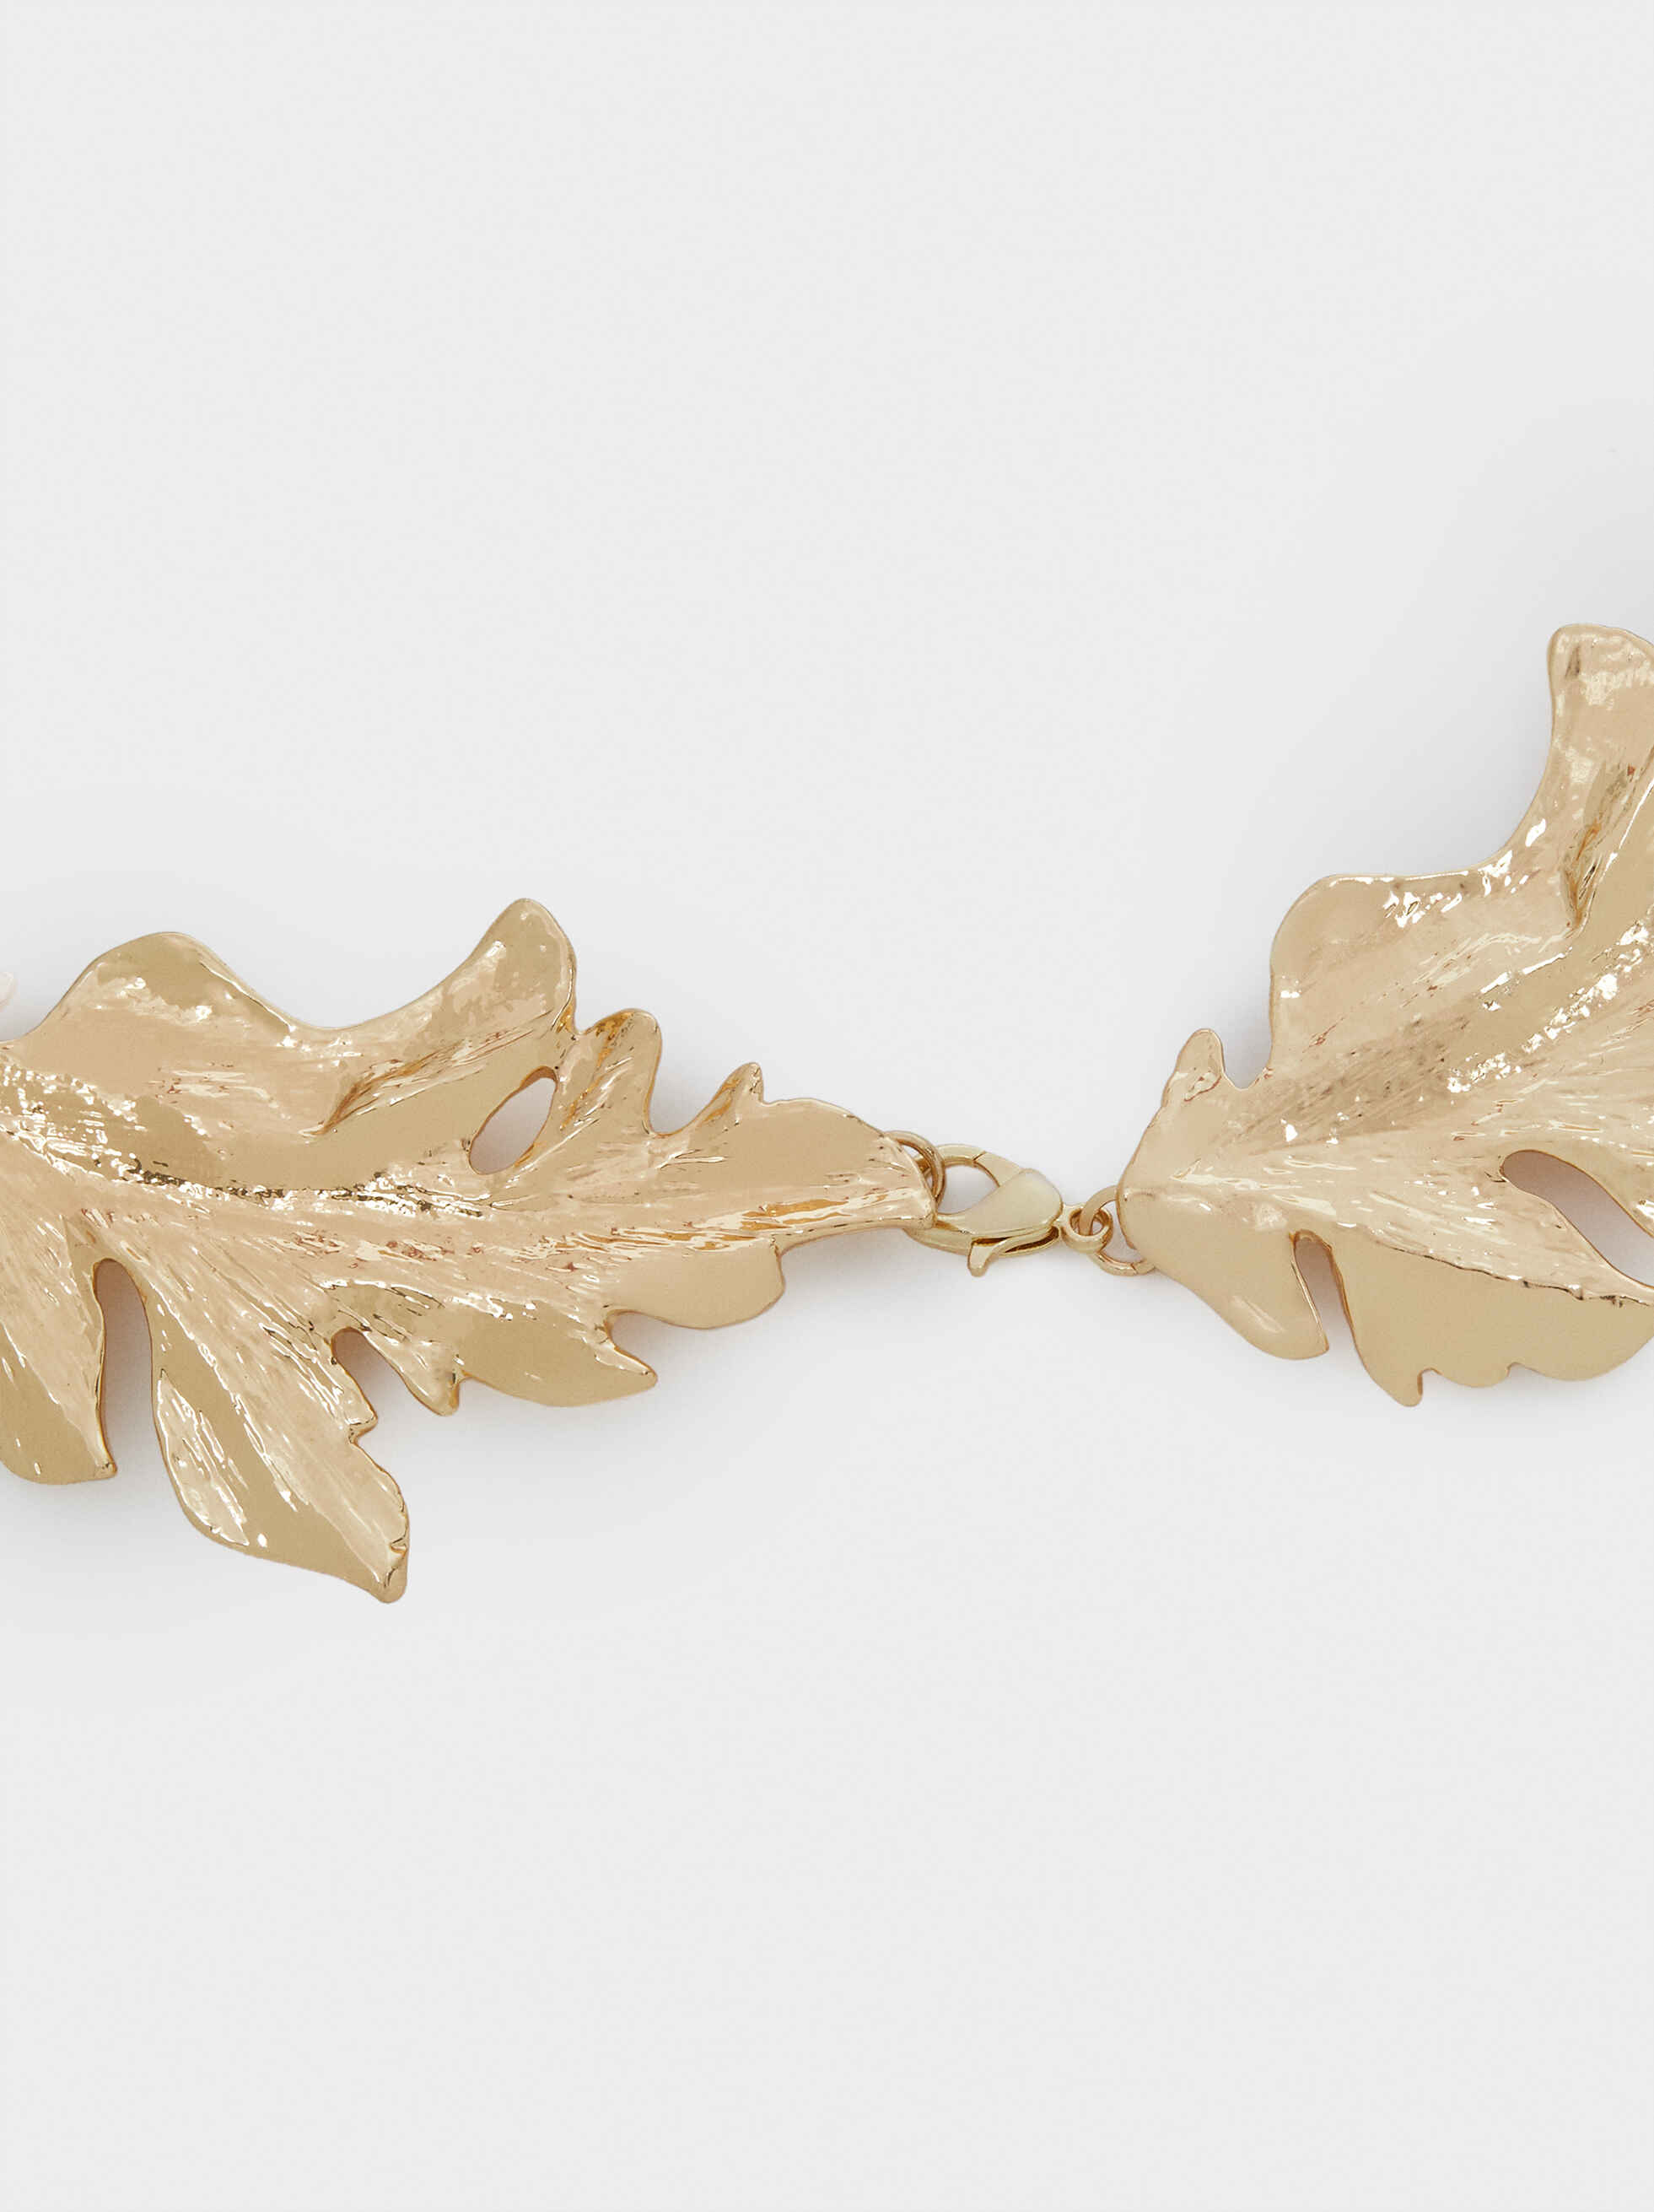 Short Gold Leaf Necklace, Golden, hi-res